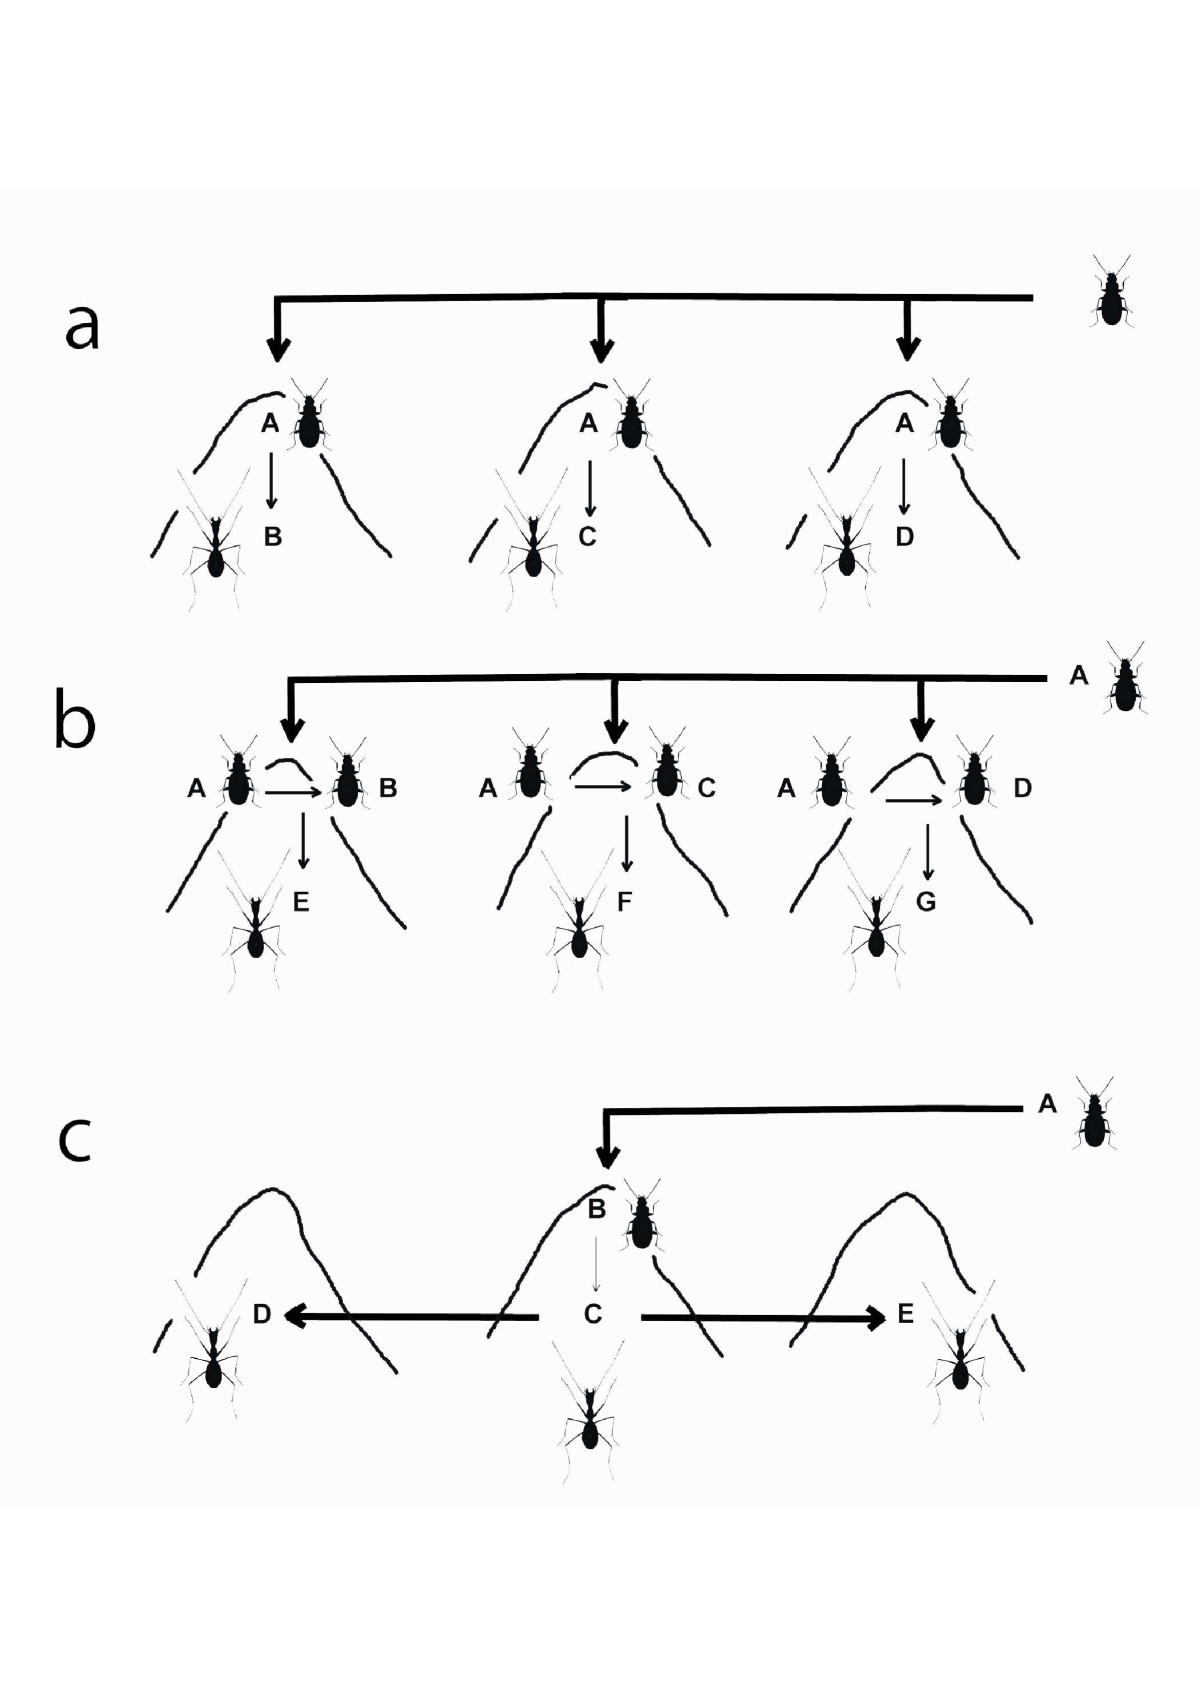 https://static-content.springer.com/image/art%3A10.1186%2F1471-2148-13-248/MediaObjects/12862_2013_Article_2765_Fig6_HTML.jpg